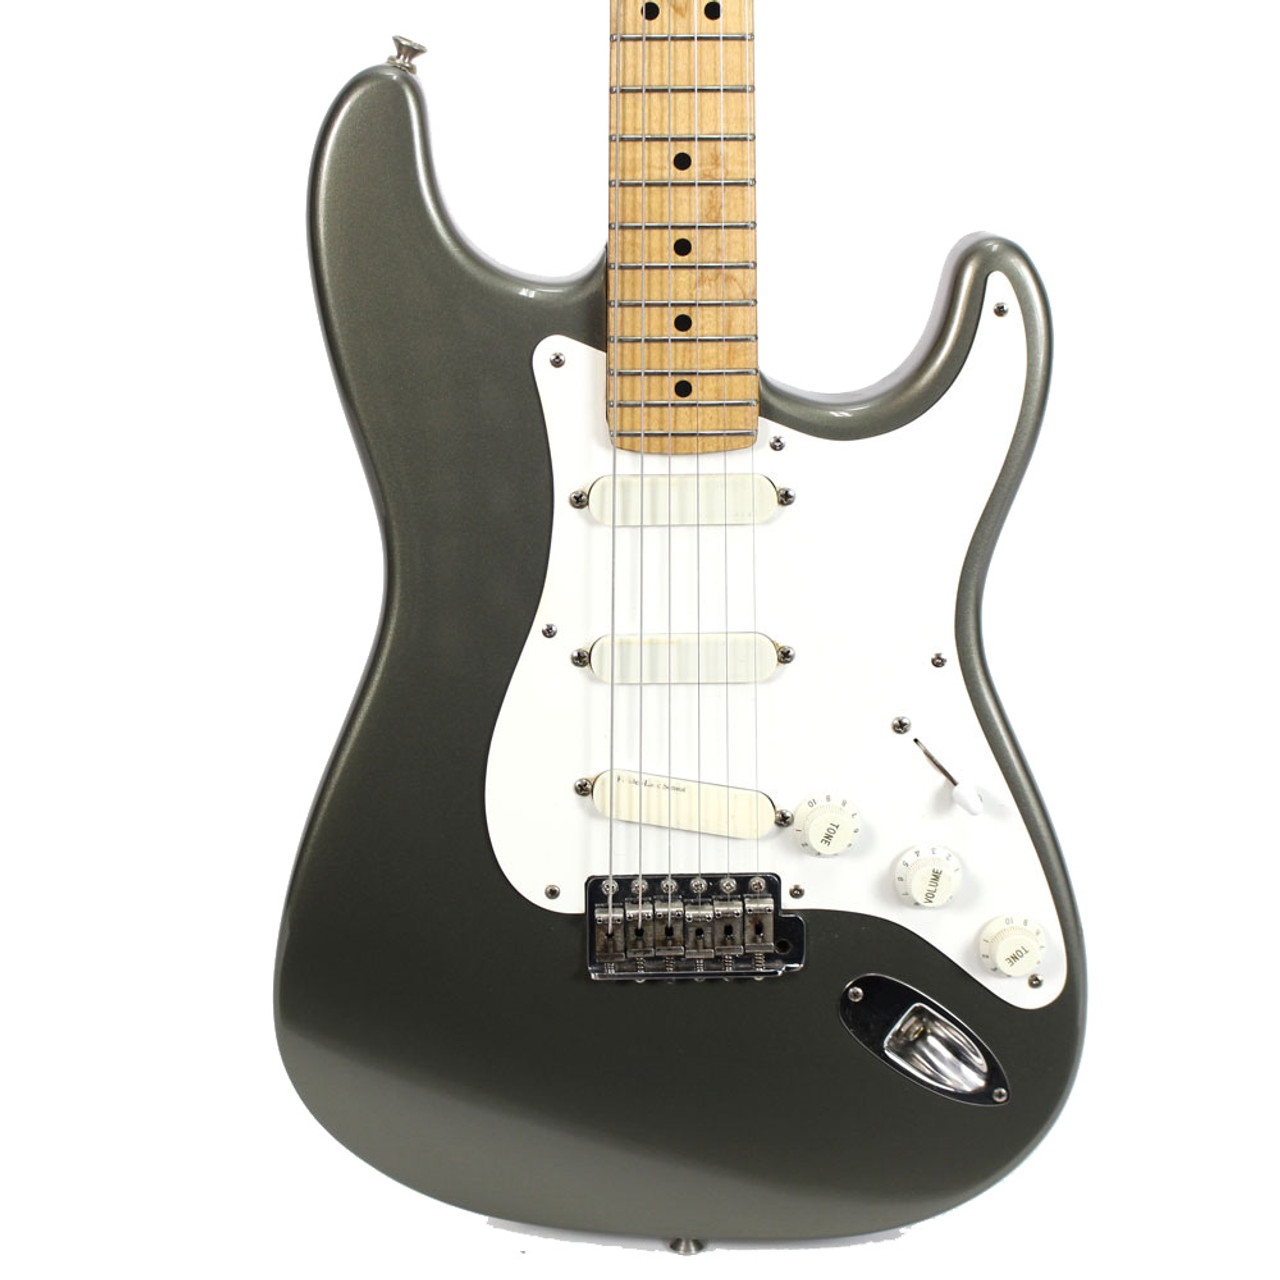 1990 fender eric clapton signature stratocaster electric guitar in pewter finish [ 1000 x 1000 Pixel ]